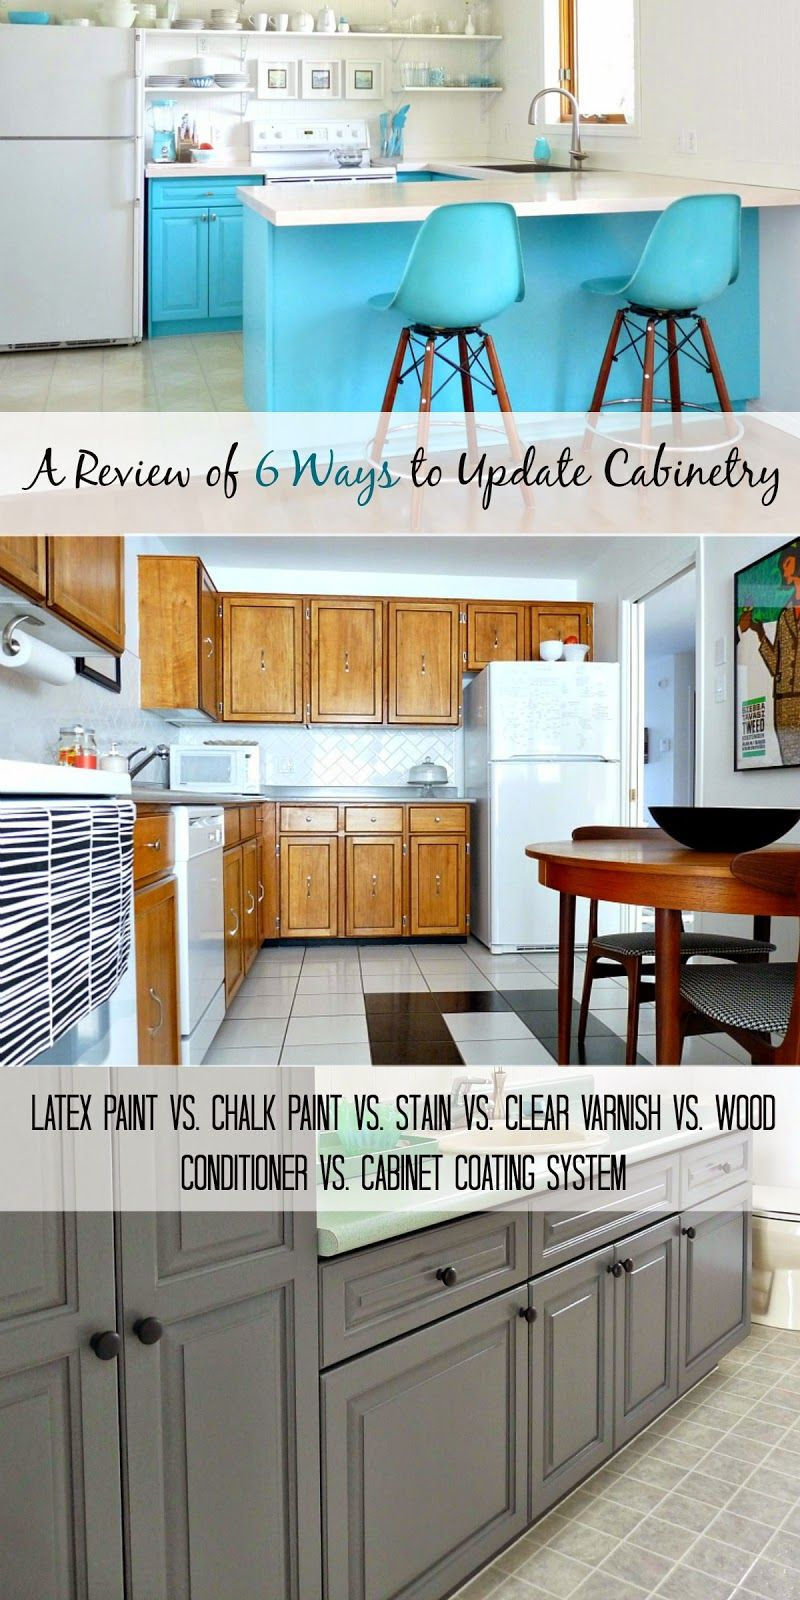 Cabinet Refinishing Paint Vs Stain Vs Cabinet Coating Systems Refinishing Cabinets Home Remodeling Home Kitchens